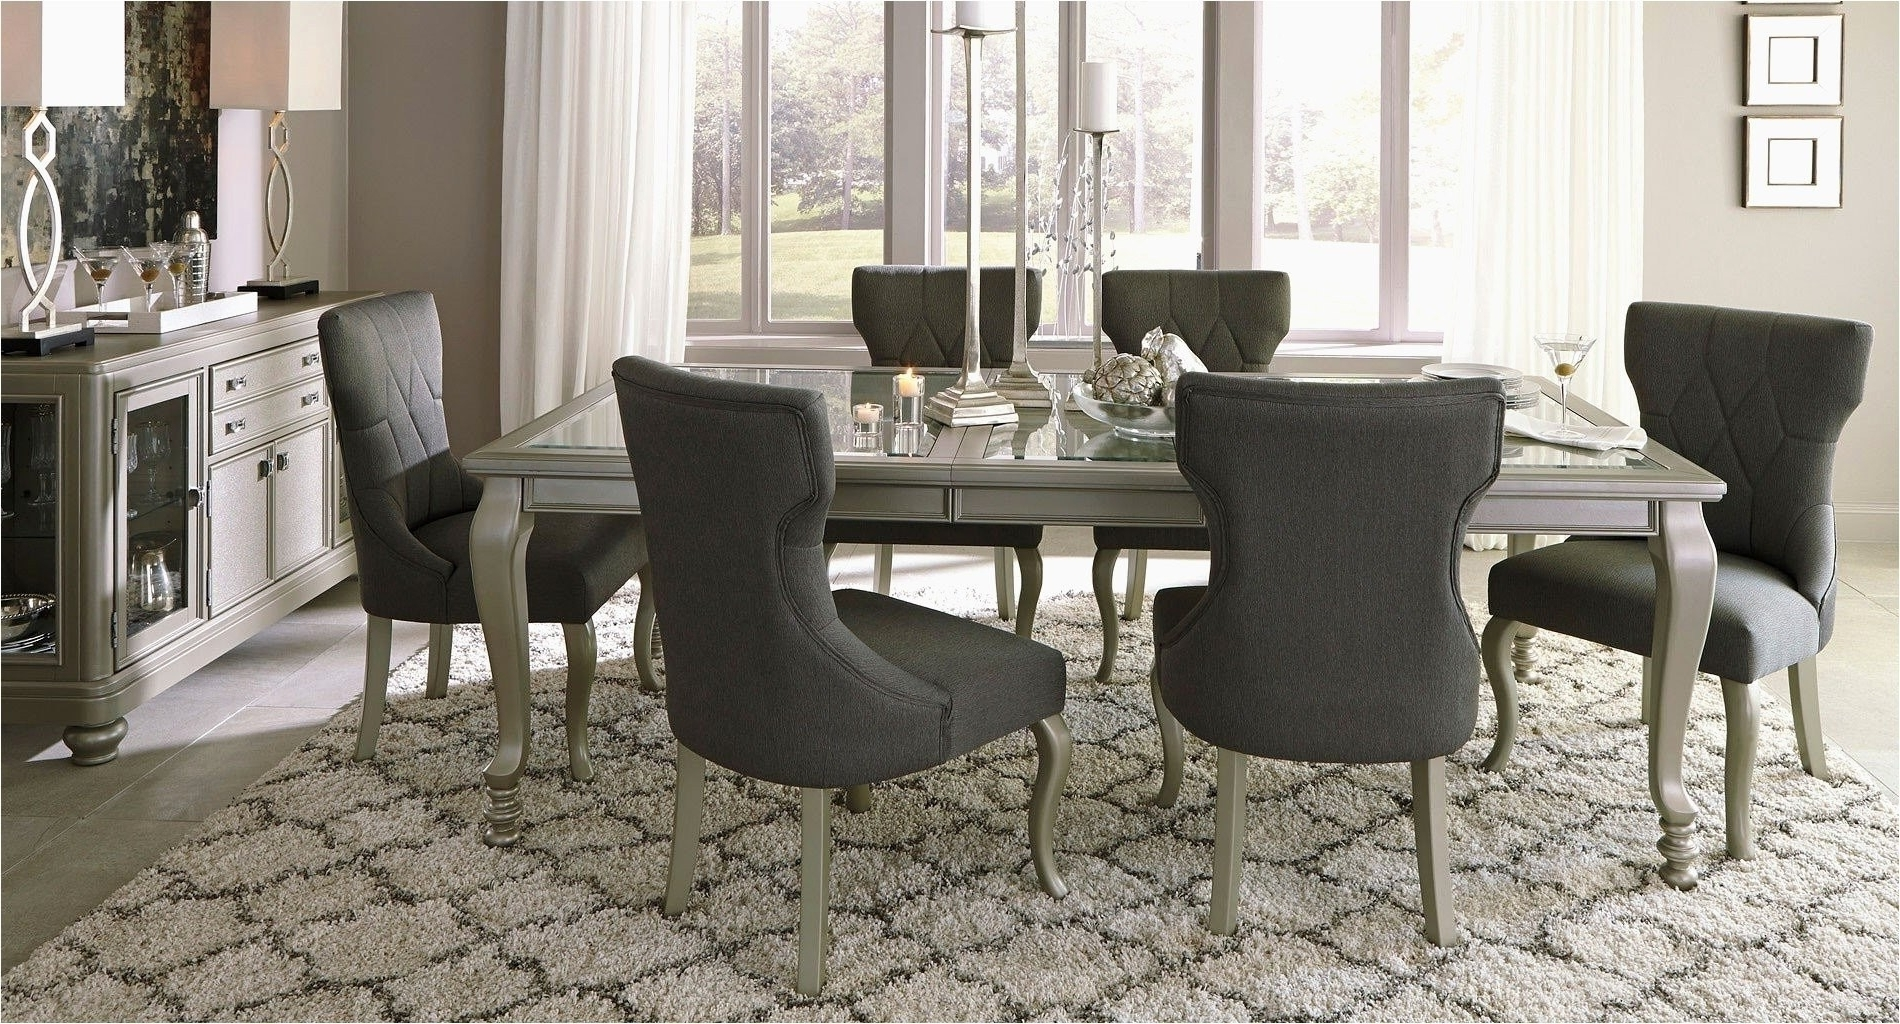 Round Oak Dining Tables And Chairs With Favorite Oval Oak Dining Table And Chairs Beautiful Oval Pedestal Dining (View 10 of 25)